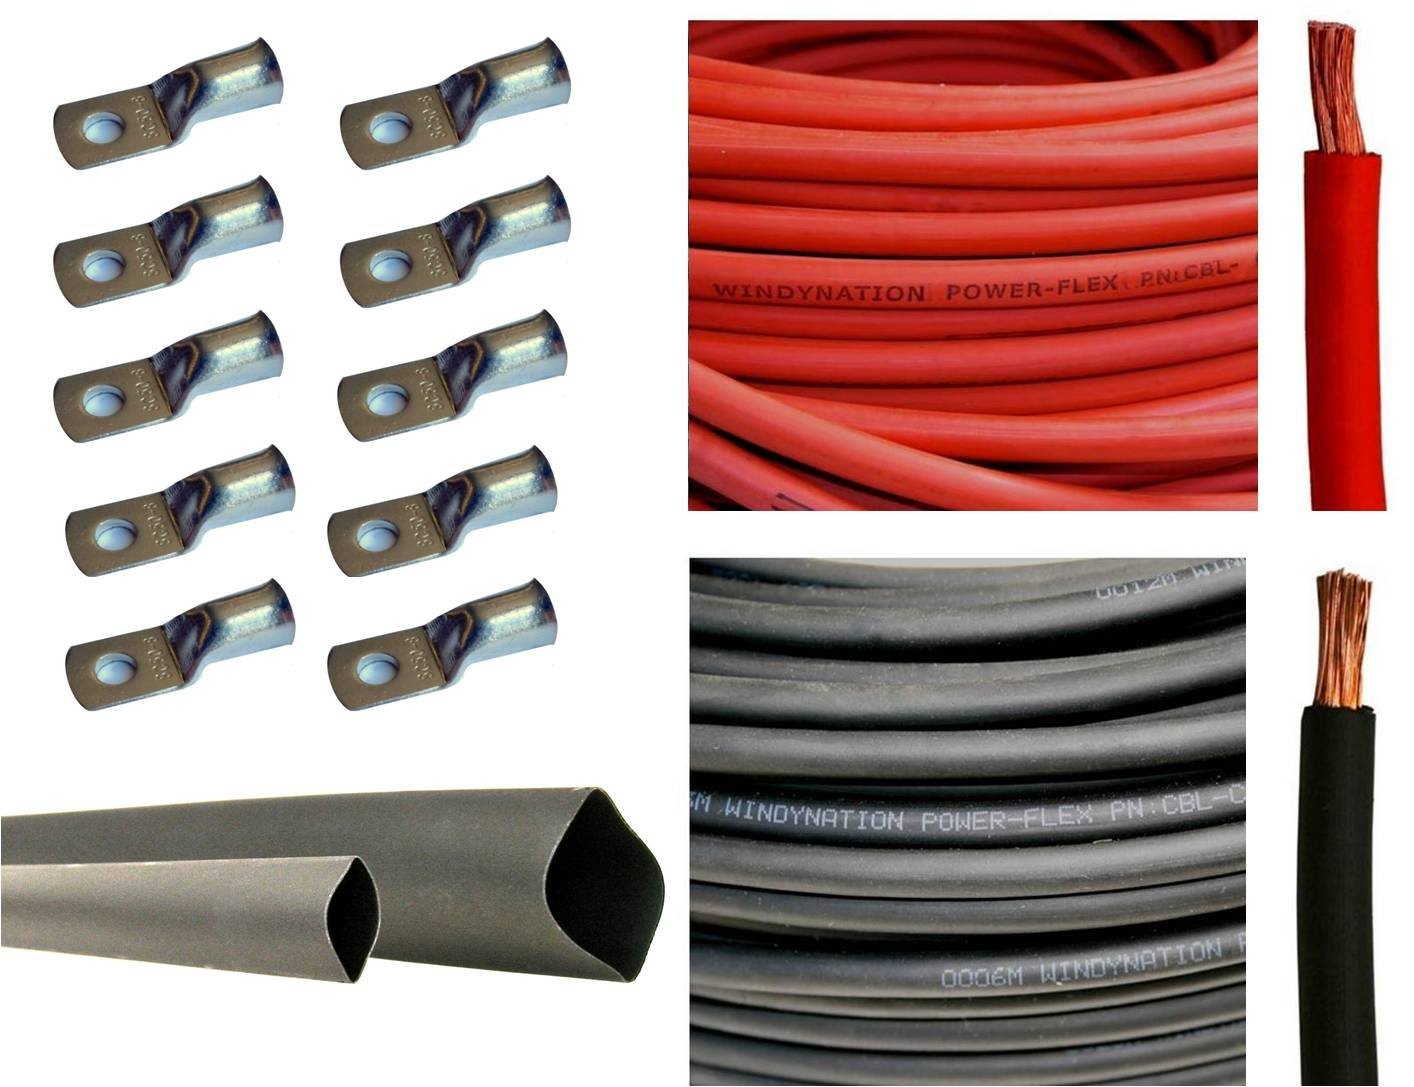 2 Gauge 2 AWG 10 Feet Red + 10 Feet Black Welding Battery Pure Copper Flexible Cable + 10pcs of 3/8'' Tinned Copper Cable Lug Terminal Connectors + 3 Feet Black Heat Shrink Tubing